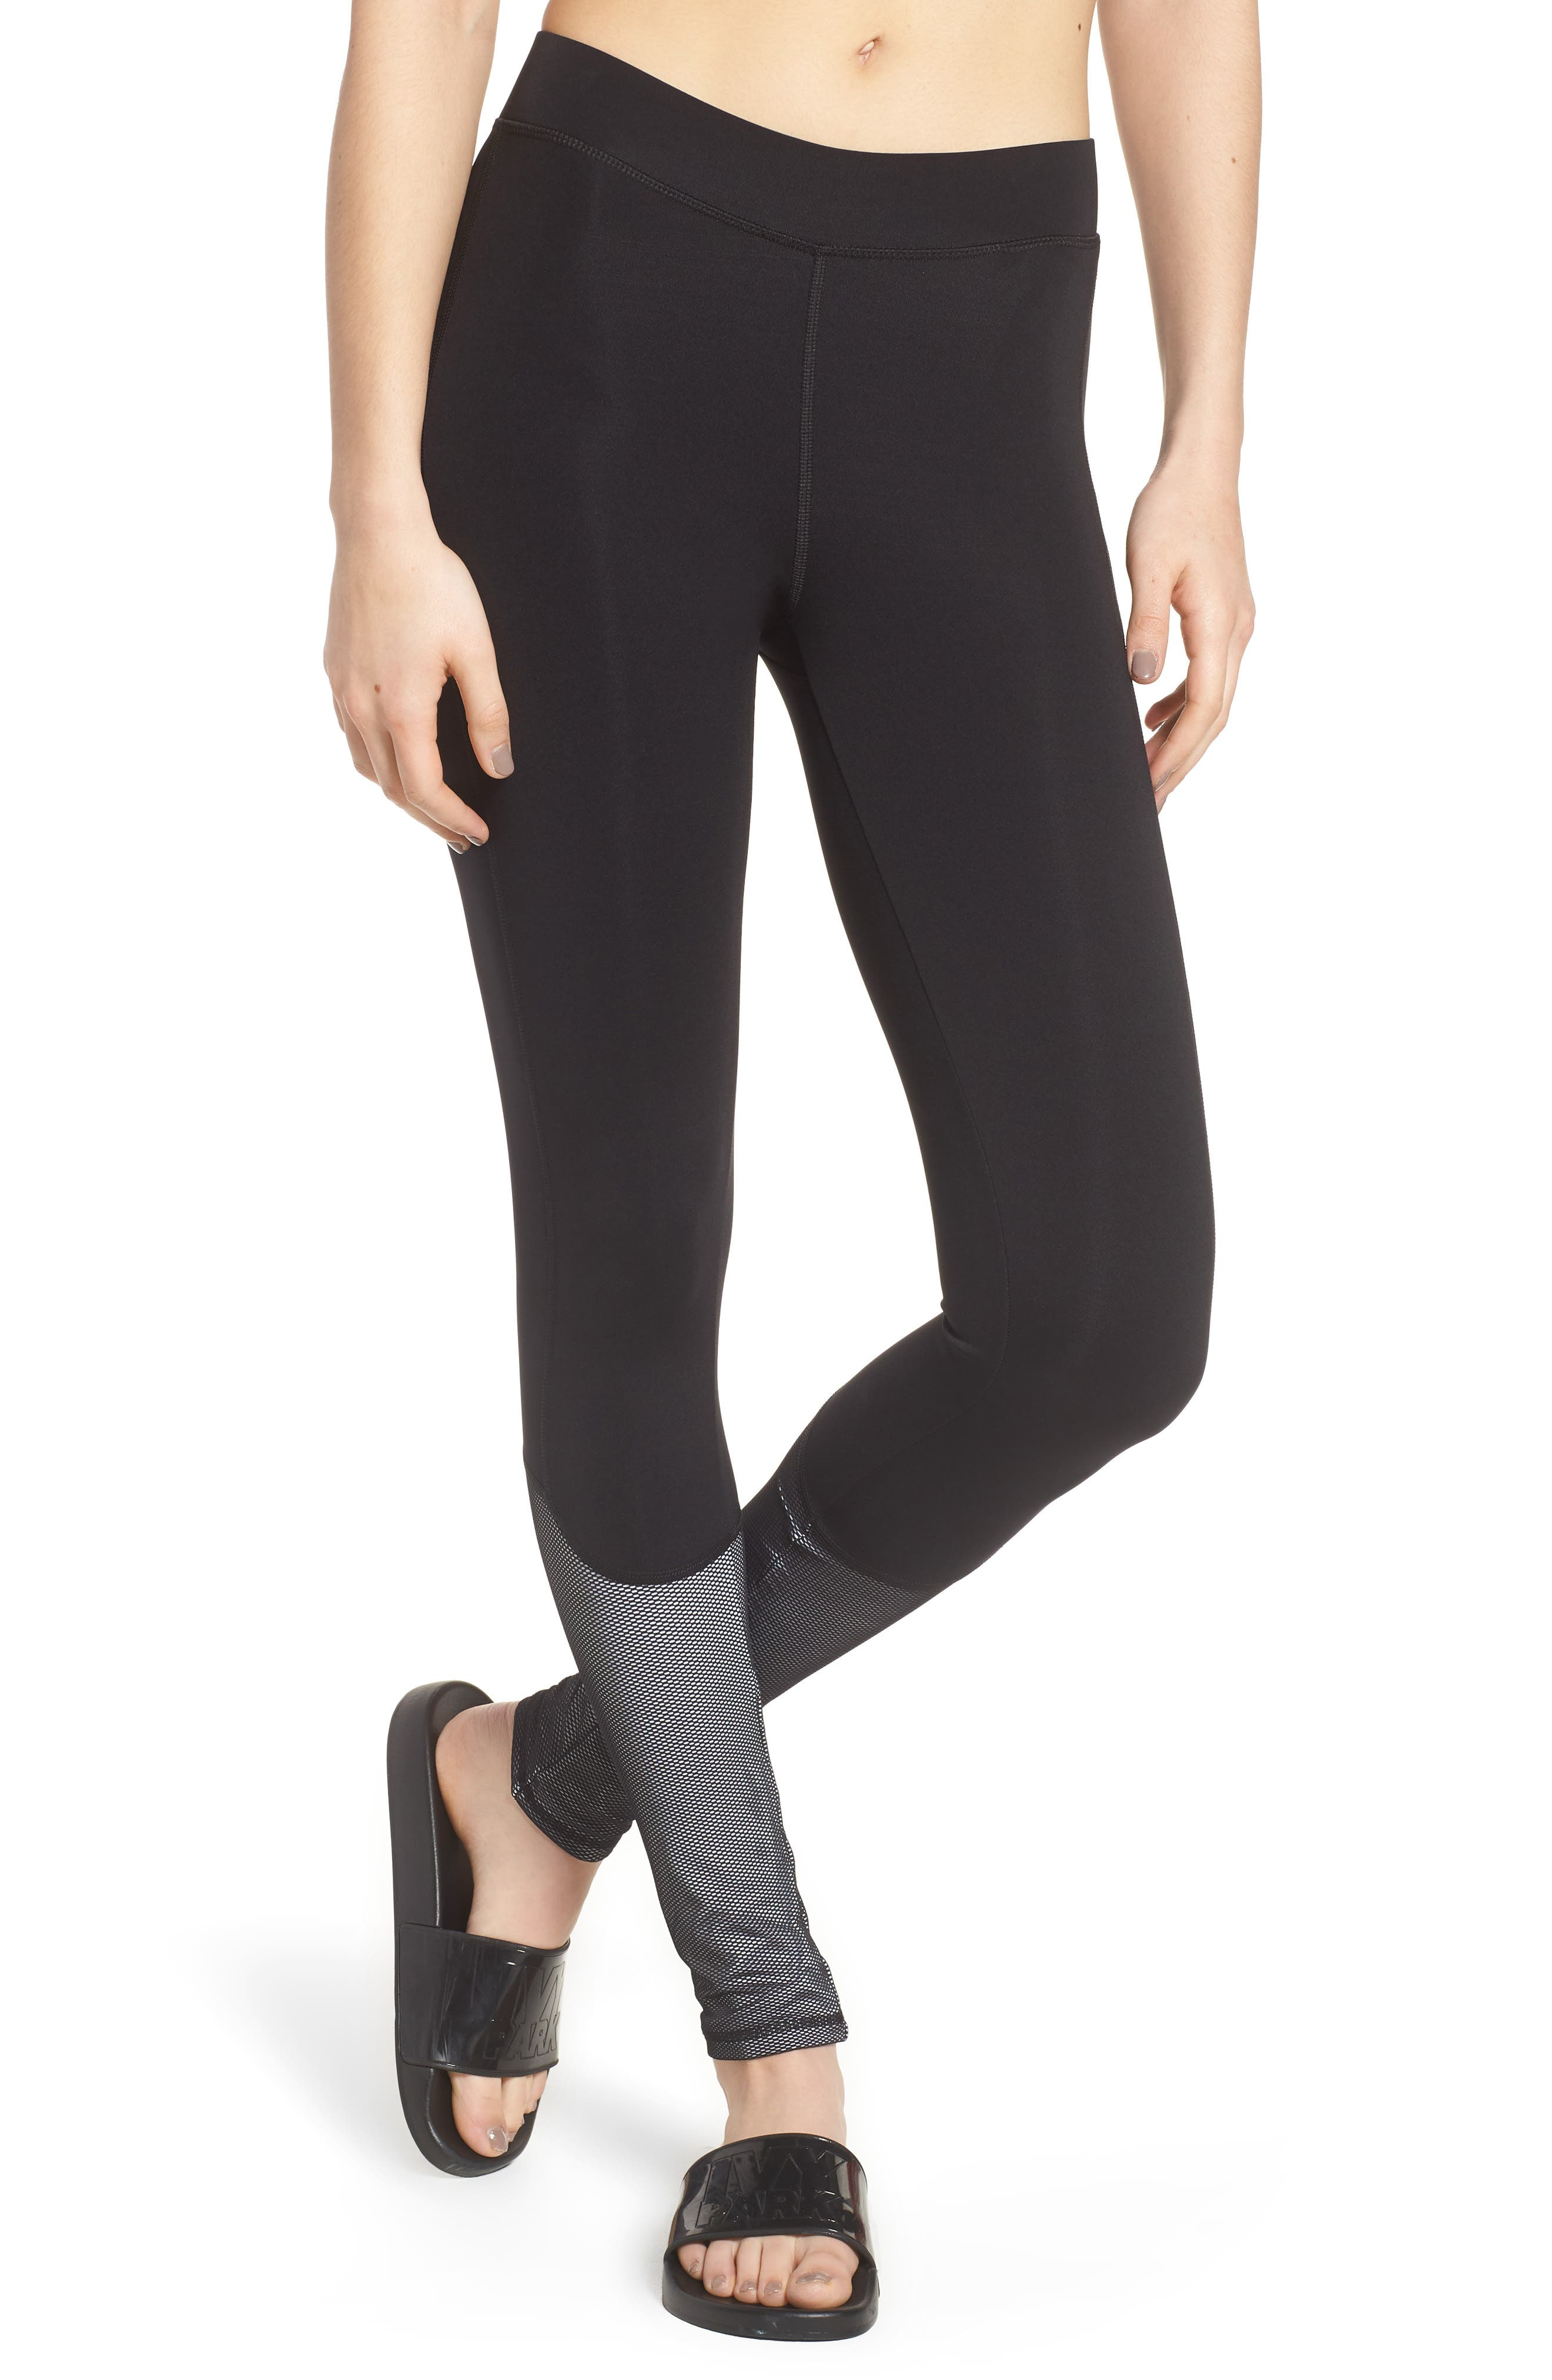 IVY PARK® Mesh Panel Leggings